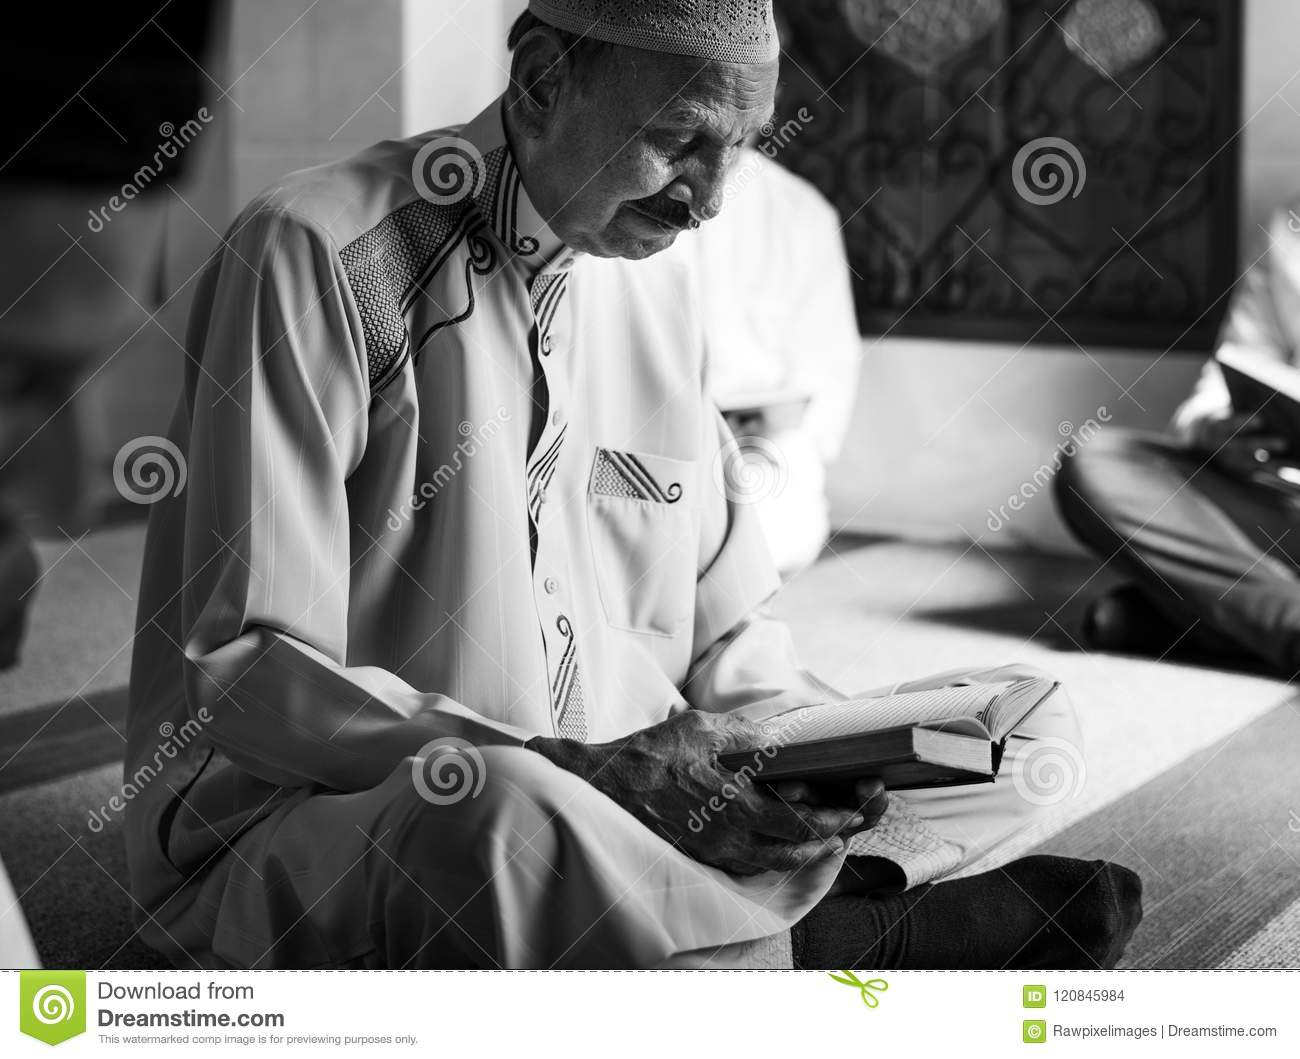 Muslims Reading From The Quran Stock Photo - Image of person